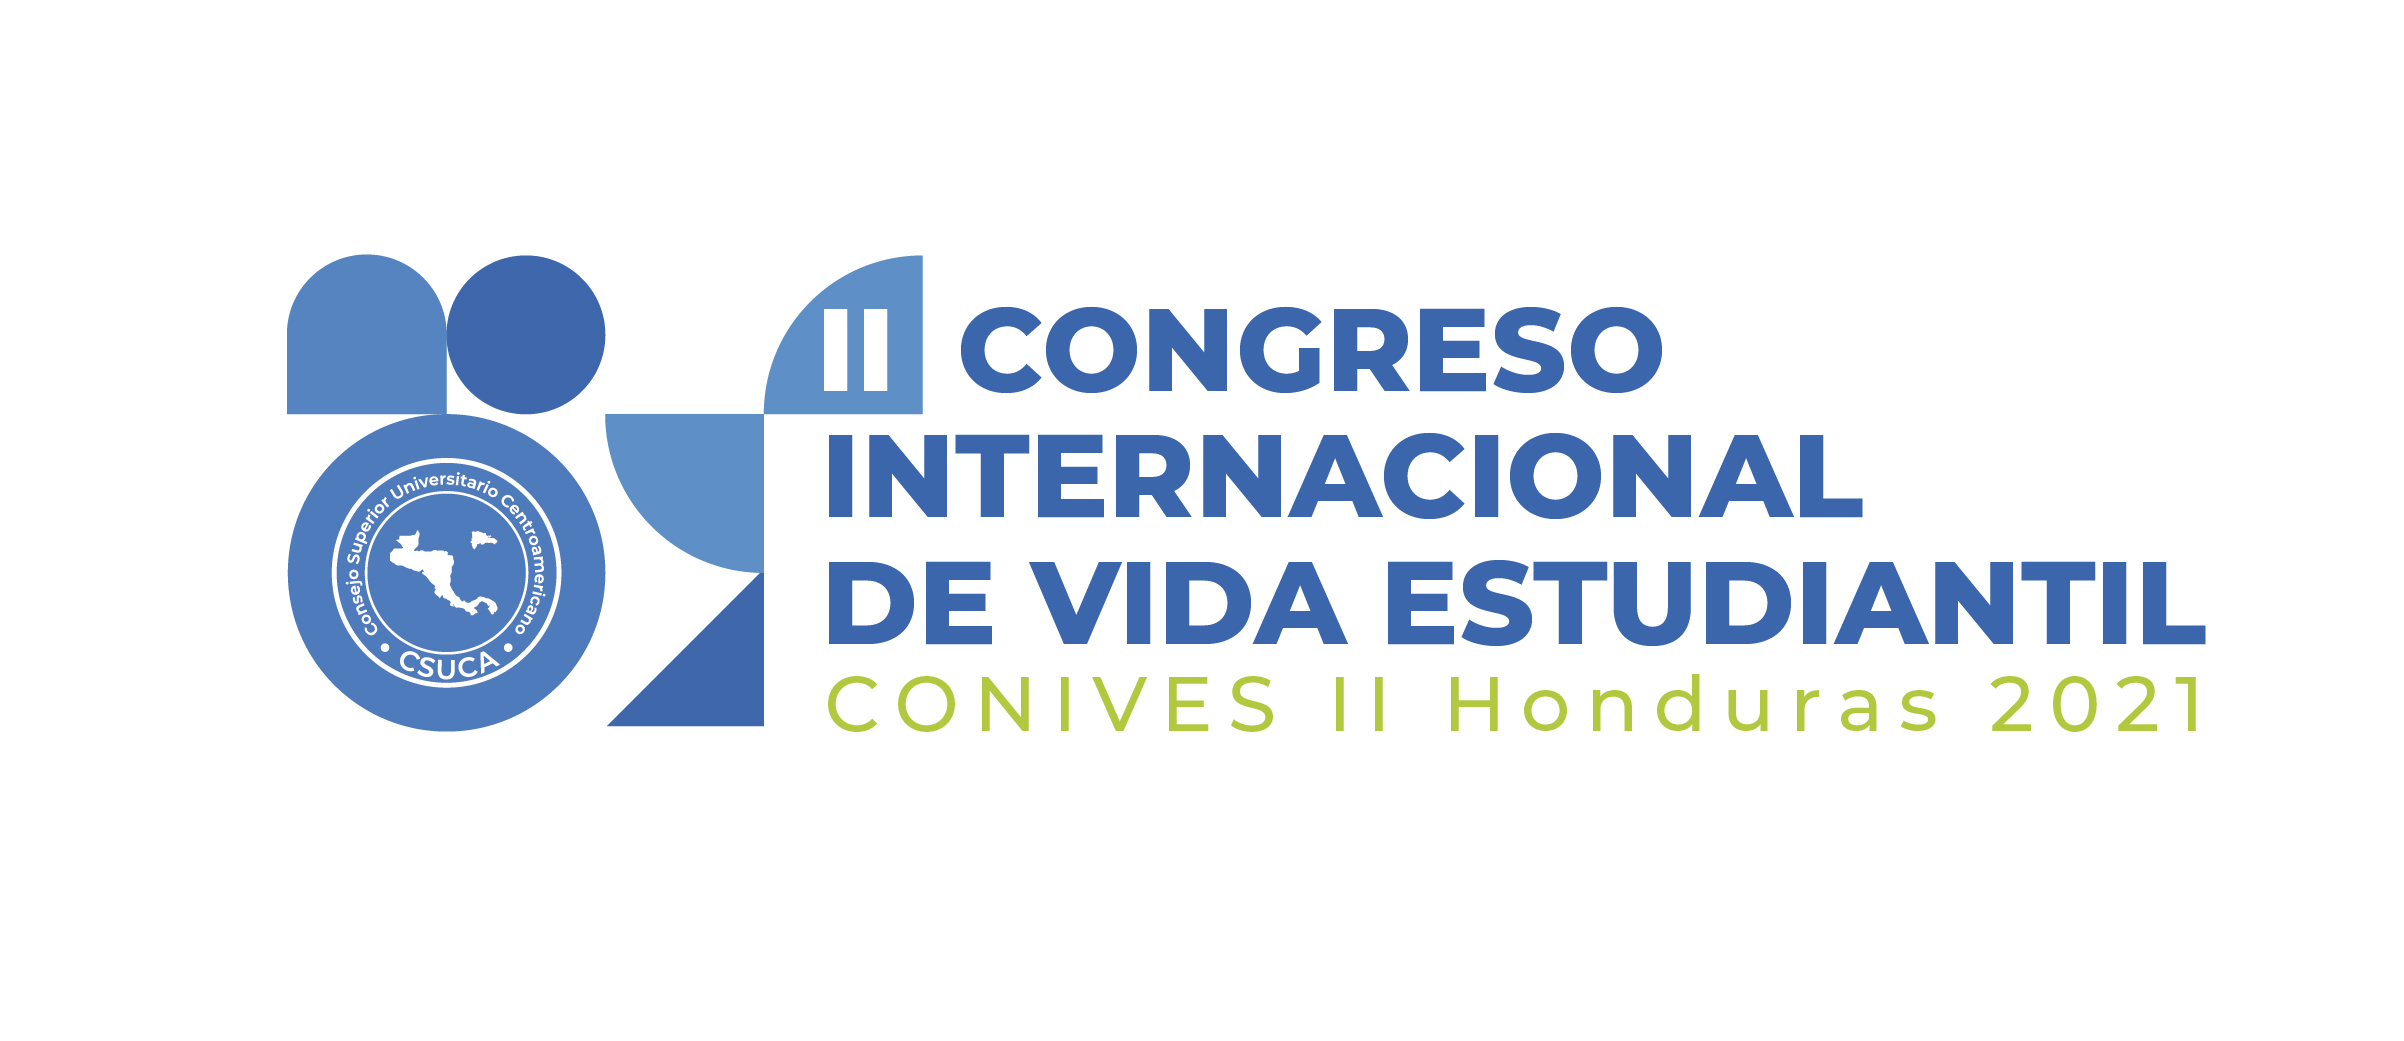 Conives logo